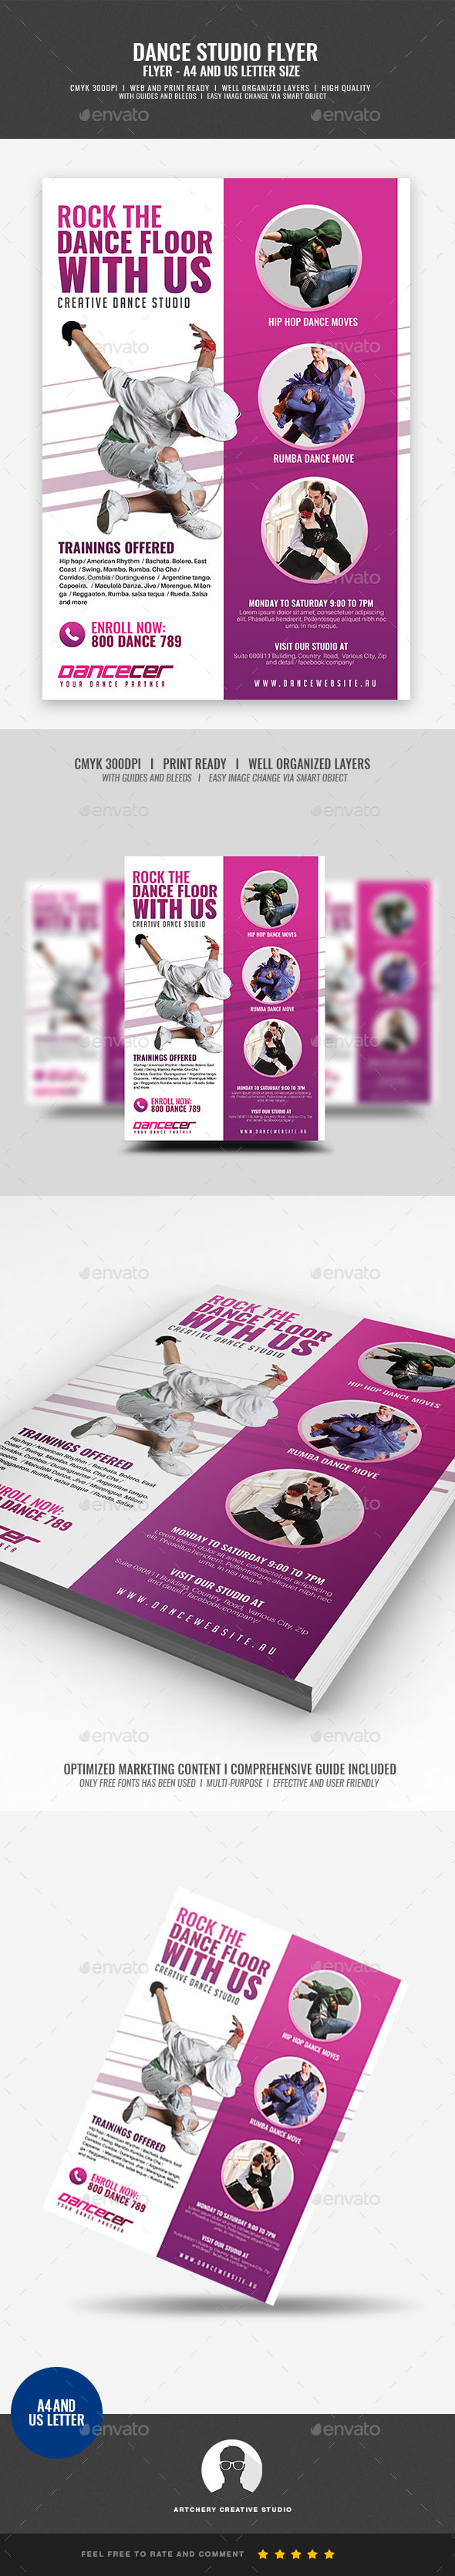 Dance Class Studio Flyer - Corporate Flyers